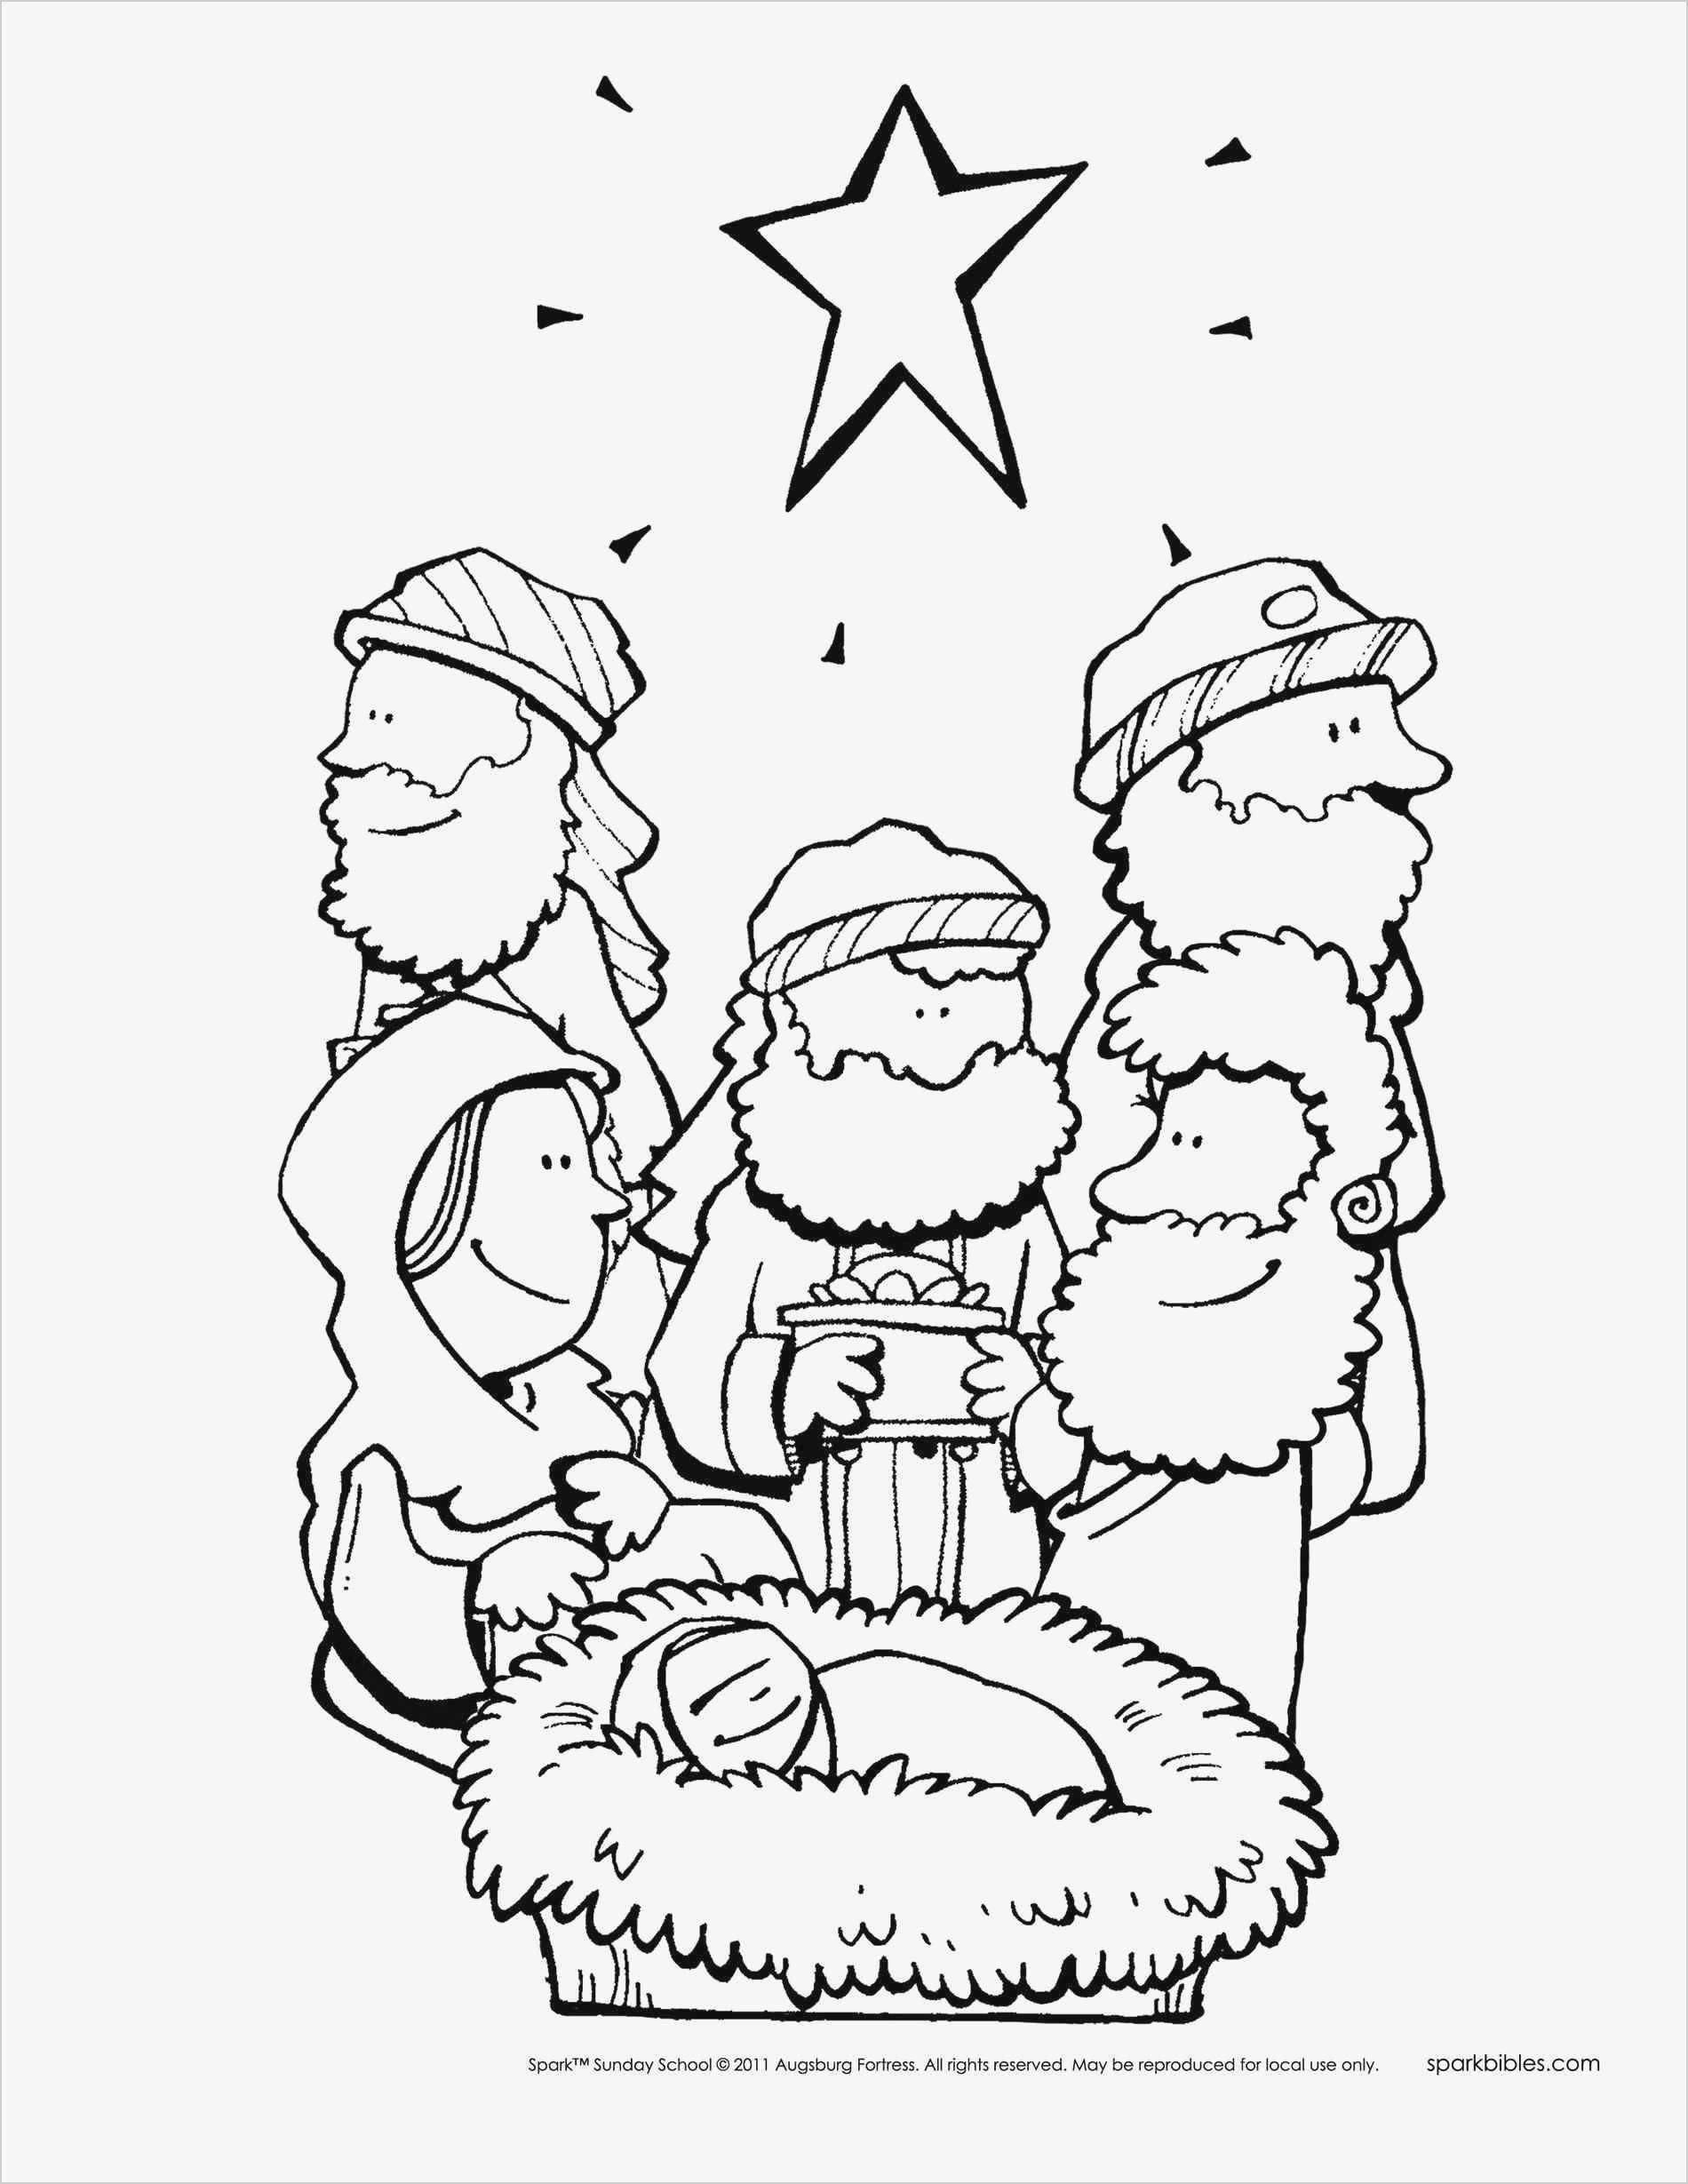 School Coloring Pages Bible School Coloring Pages Free Printable Christian Coloring